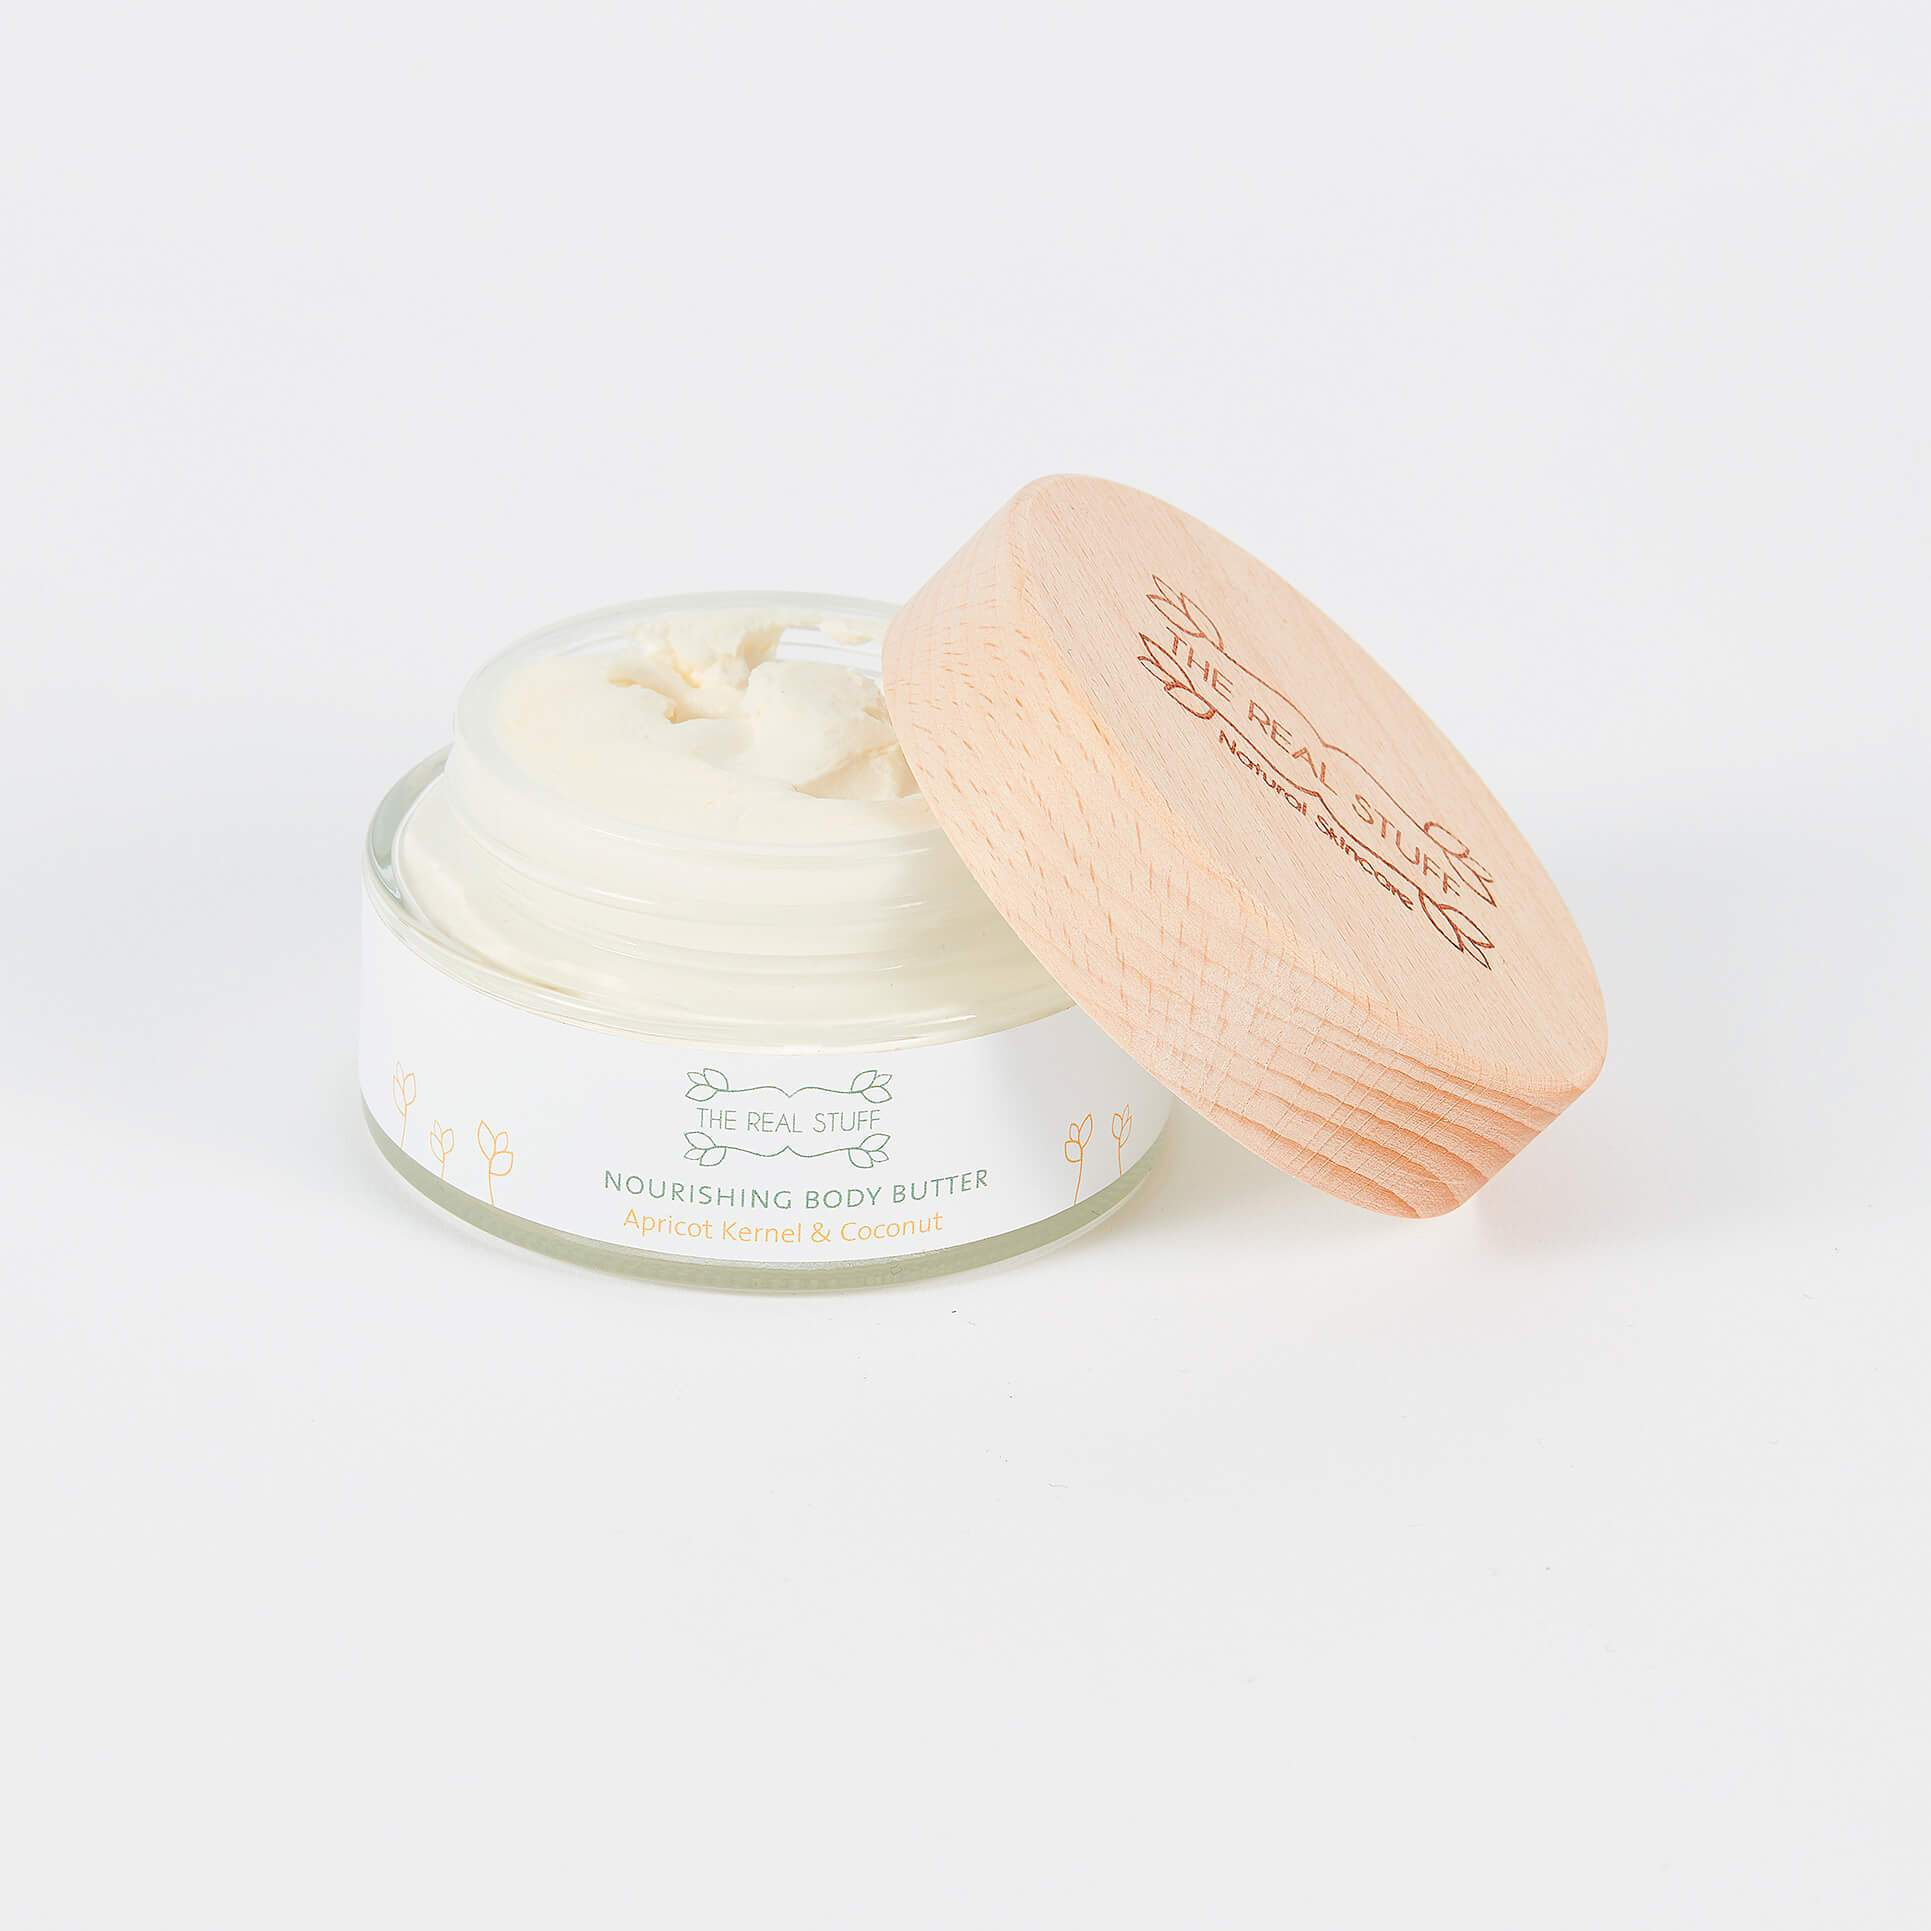 Nourishing Body Butter Körperpflege The Real Stuff Organic Skincare - Genuine Selection